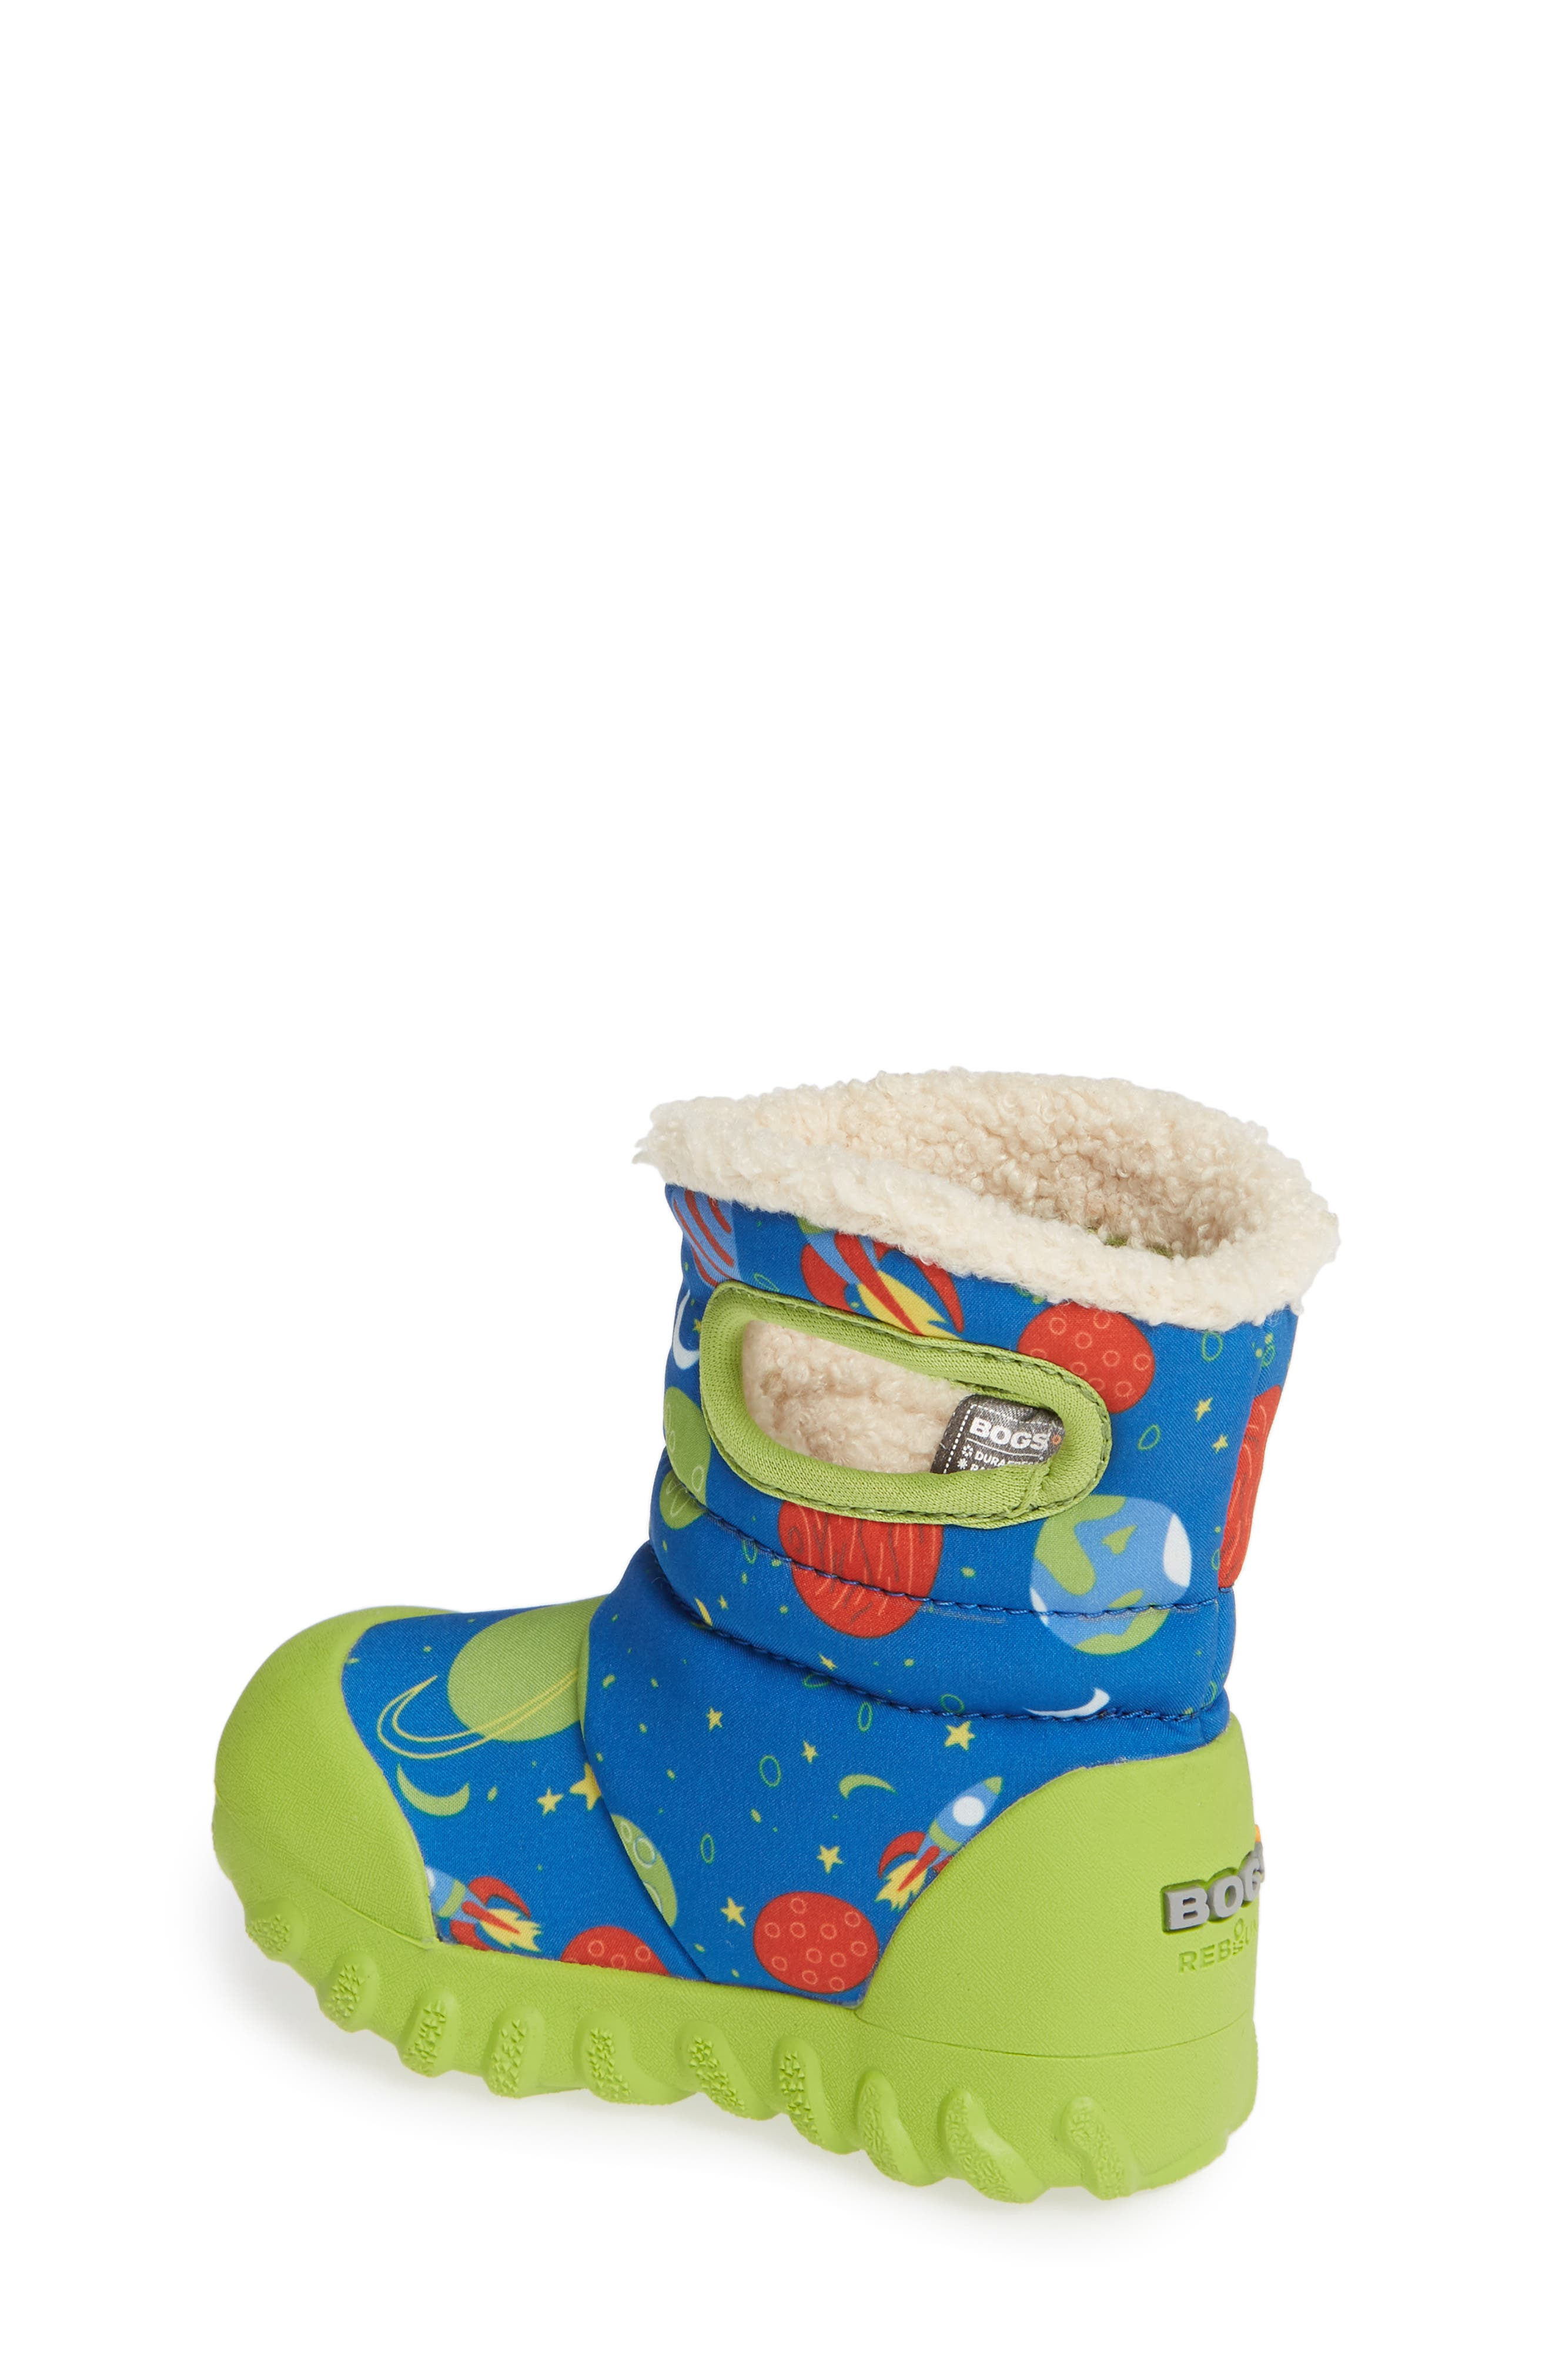 BOGS, B-MOC Space Waterproof Insulated Faux Fur Boot, Alternate thumbnail 2, color, BLUE MULTI